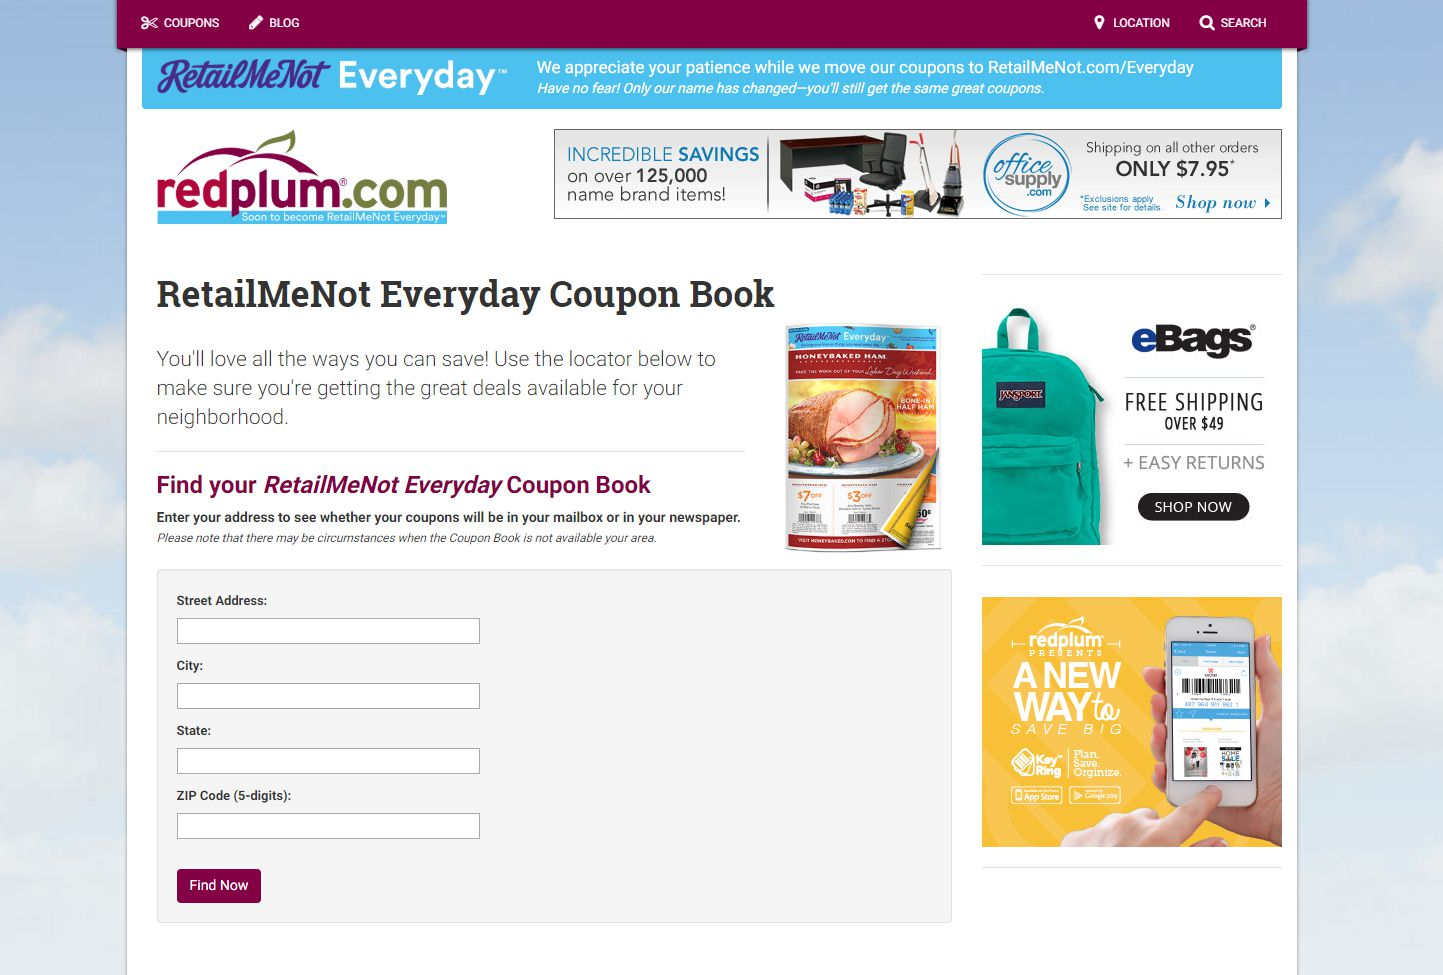 The form to request a free coupon book